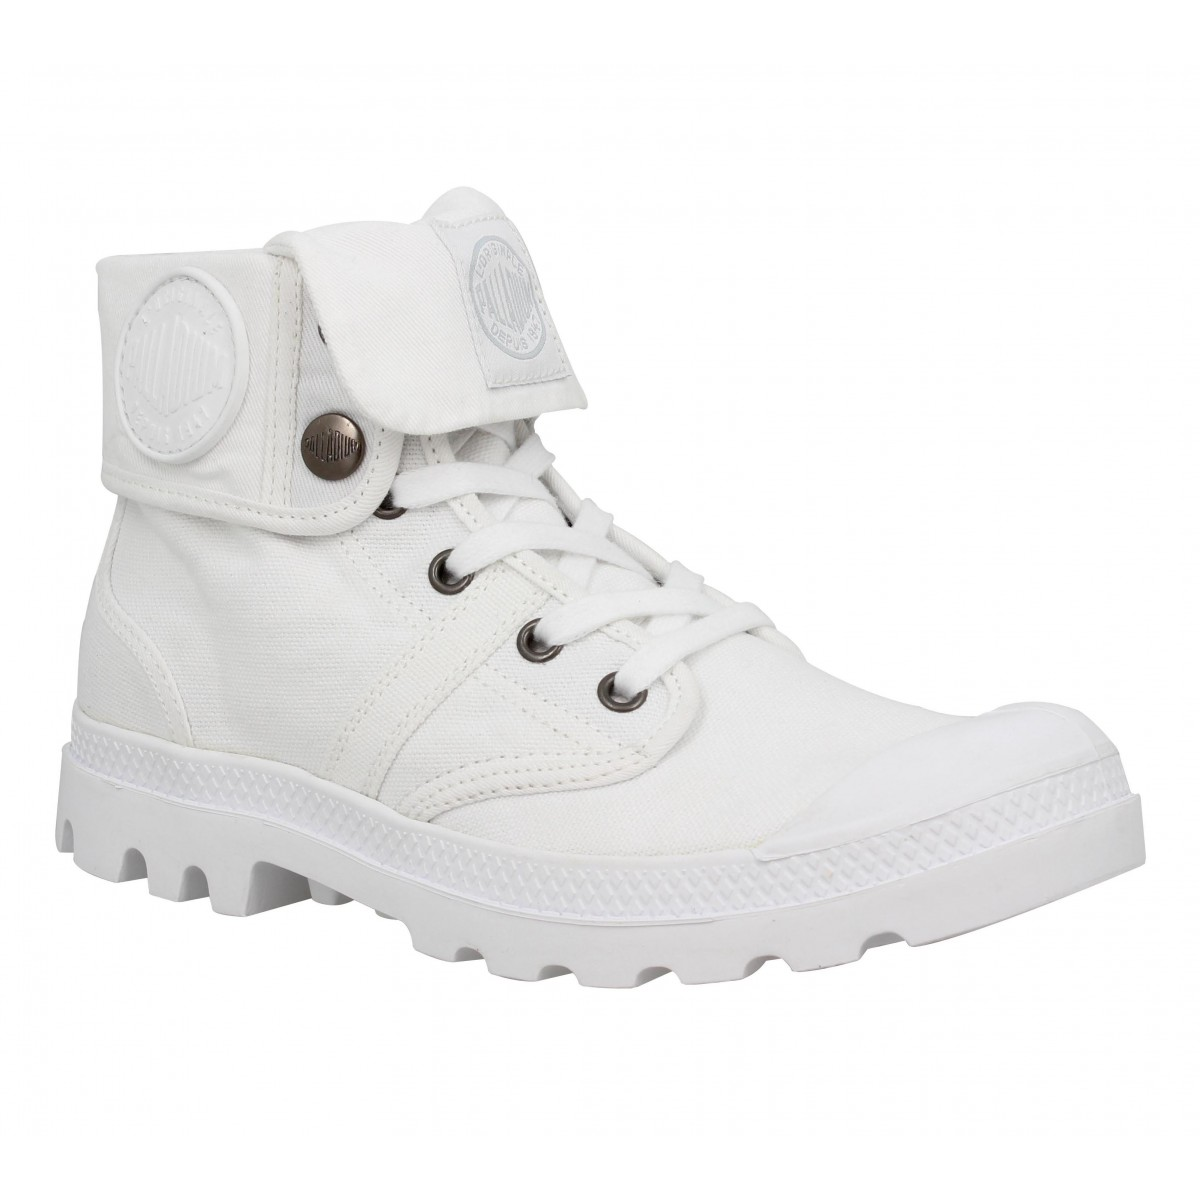 Bottines PALLADIUM Baggy CVS toile Homme Blanc